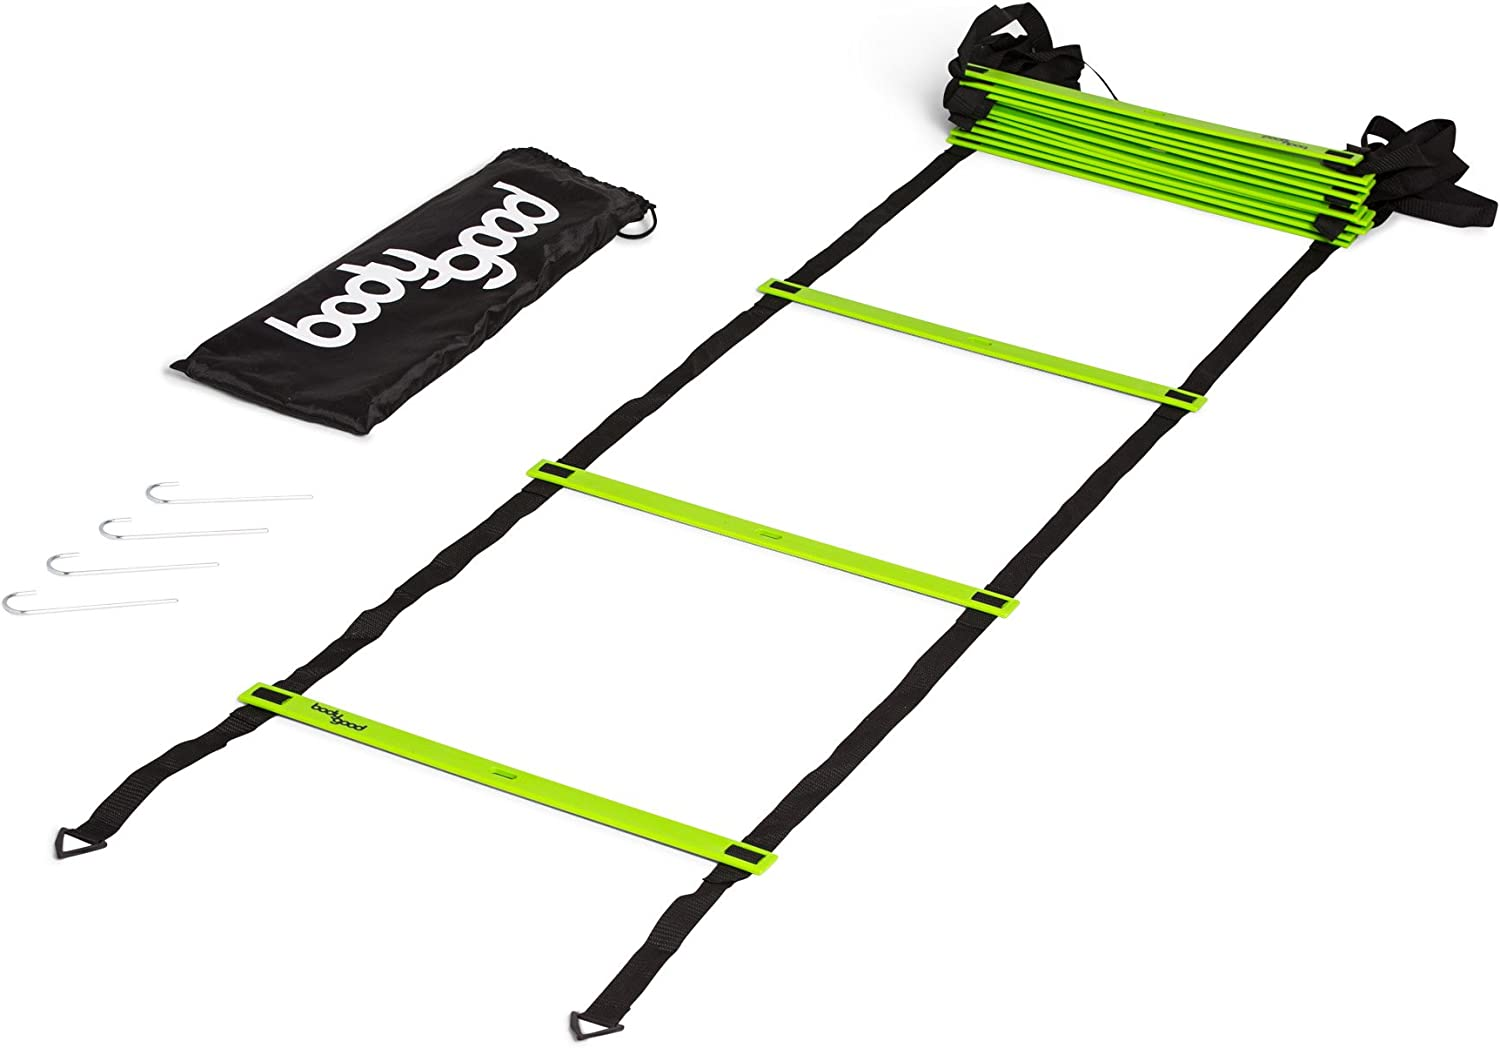 BodyGood Pro Athlete Grade Speed Agility Ladder Extra-Long, 20 Foot Quick Ladder with Durable Flat Rungs for Easy Set Up and Consistent Workout. Includes Free Carrying Bag and Online Training Video